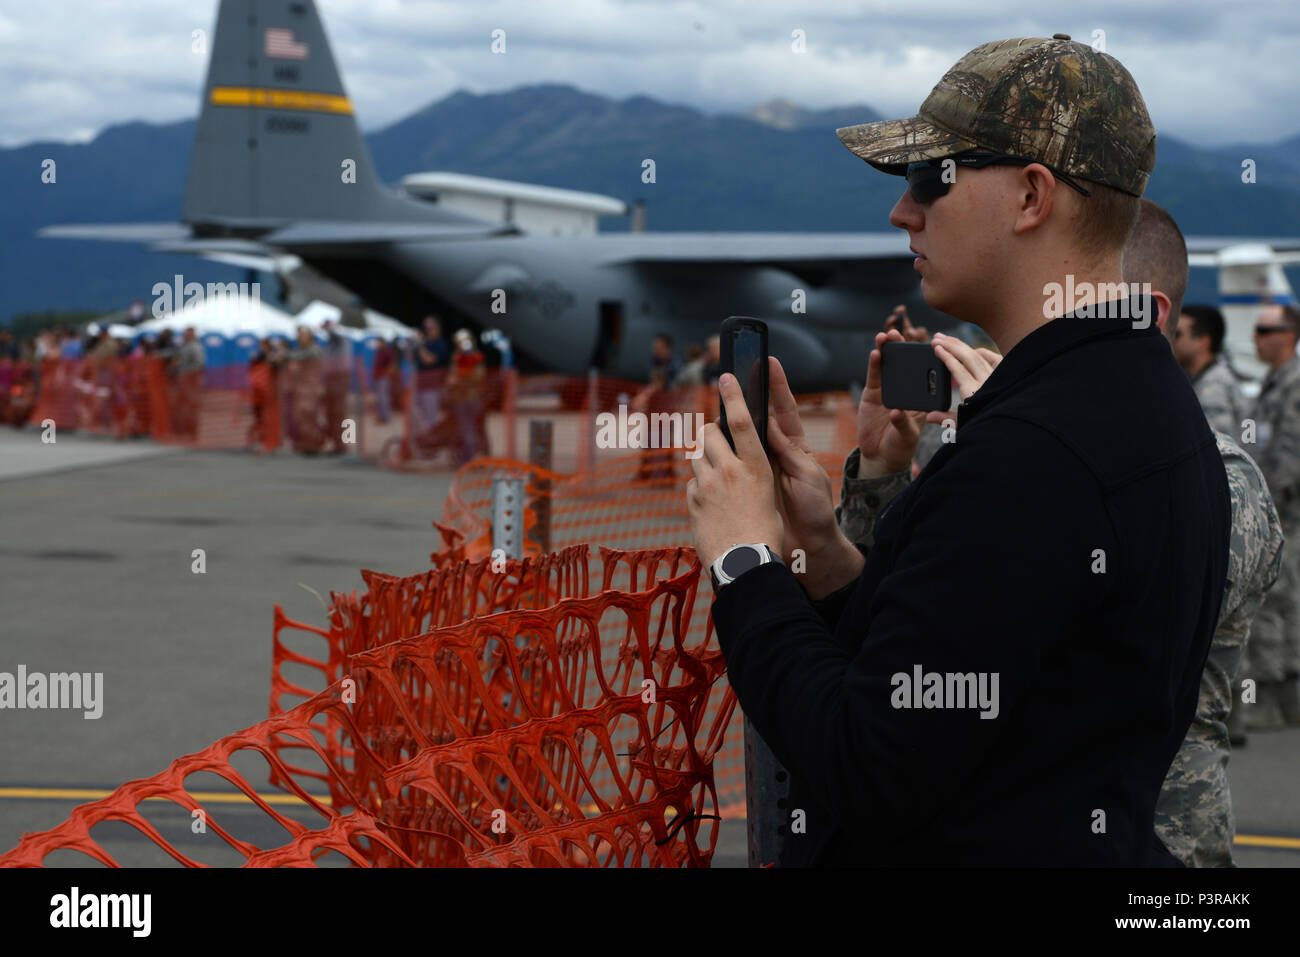 Gregory Decker, a weapons systems coordinator with 3rd Maintenance Group at JBER takes photos of the U.S. Navy Flight Demonstration Squadron, the Blue Angels take-off during Arctic Thunder Special Needs and Family Day, July 29, 2016. JBER will open the doors to the public, showcasing more than 40 key performers and ground acts to include the JBER joint forces, U.S. Air Force F-22, and U.S. Navy Blue Angels demonstrations teams. (U.S Air Force photo by Airman 1st Class Javier Alvarez) Stock Photo